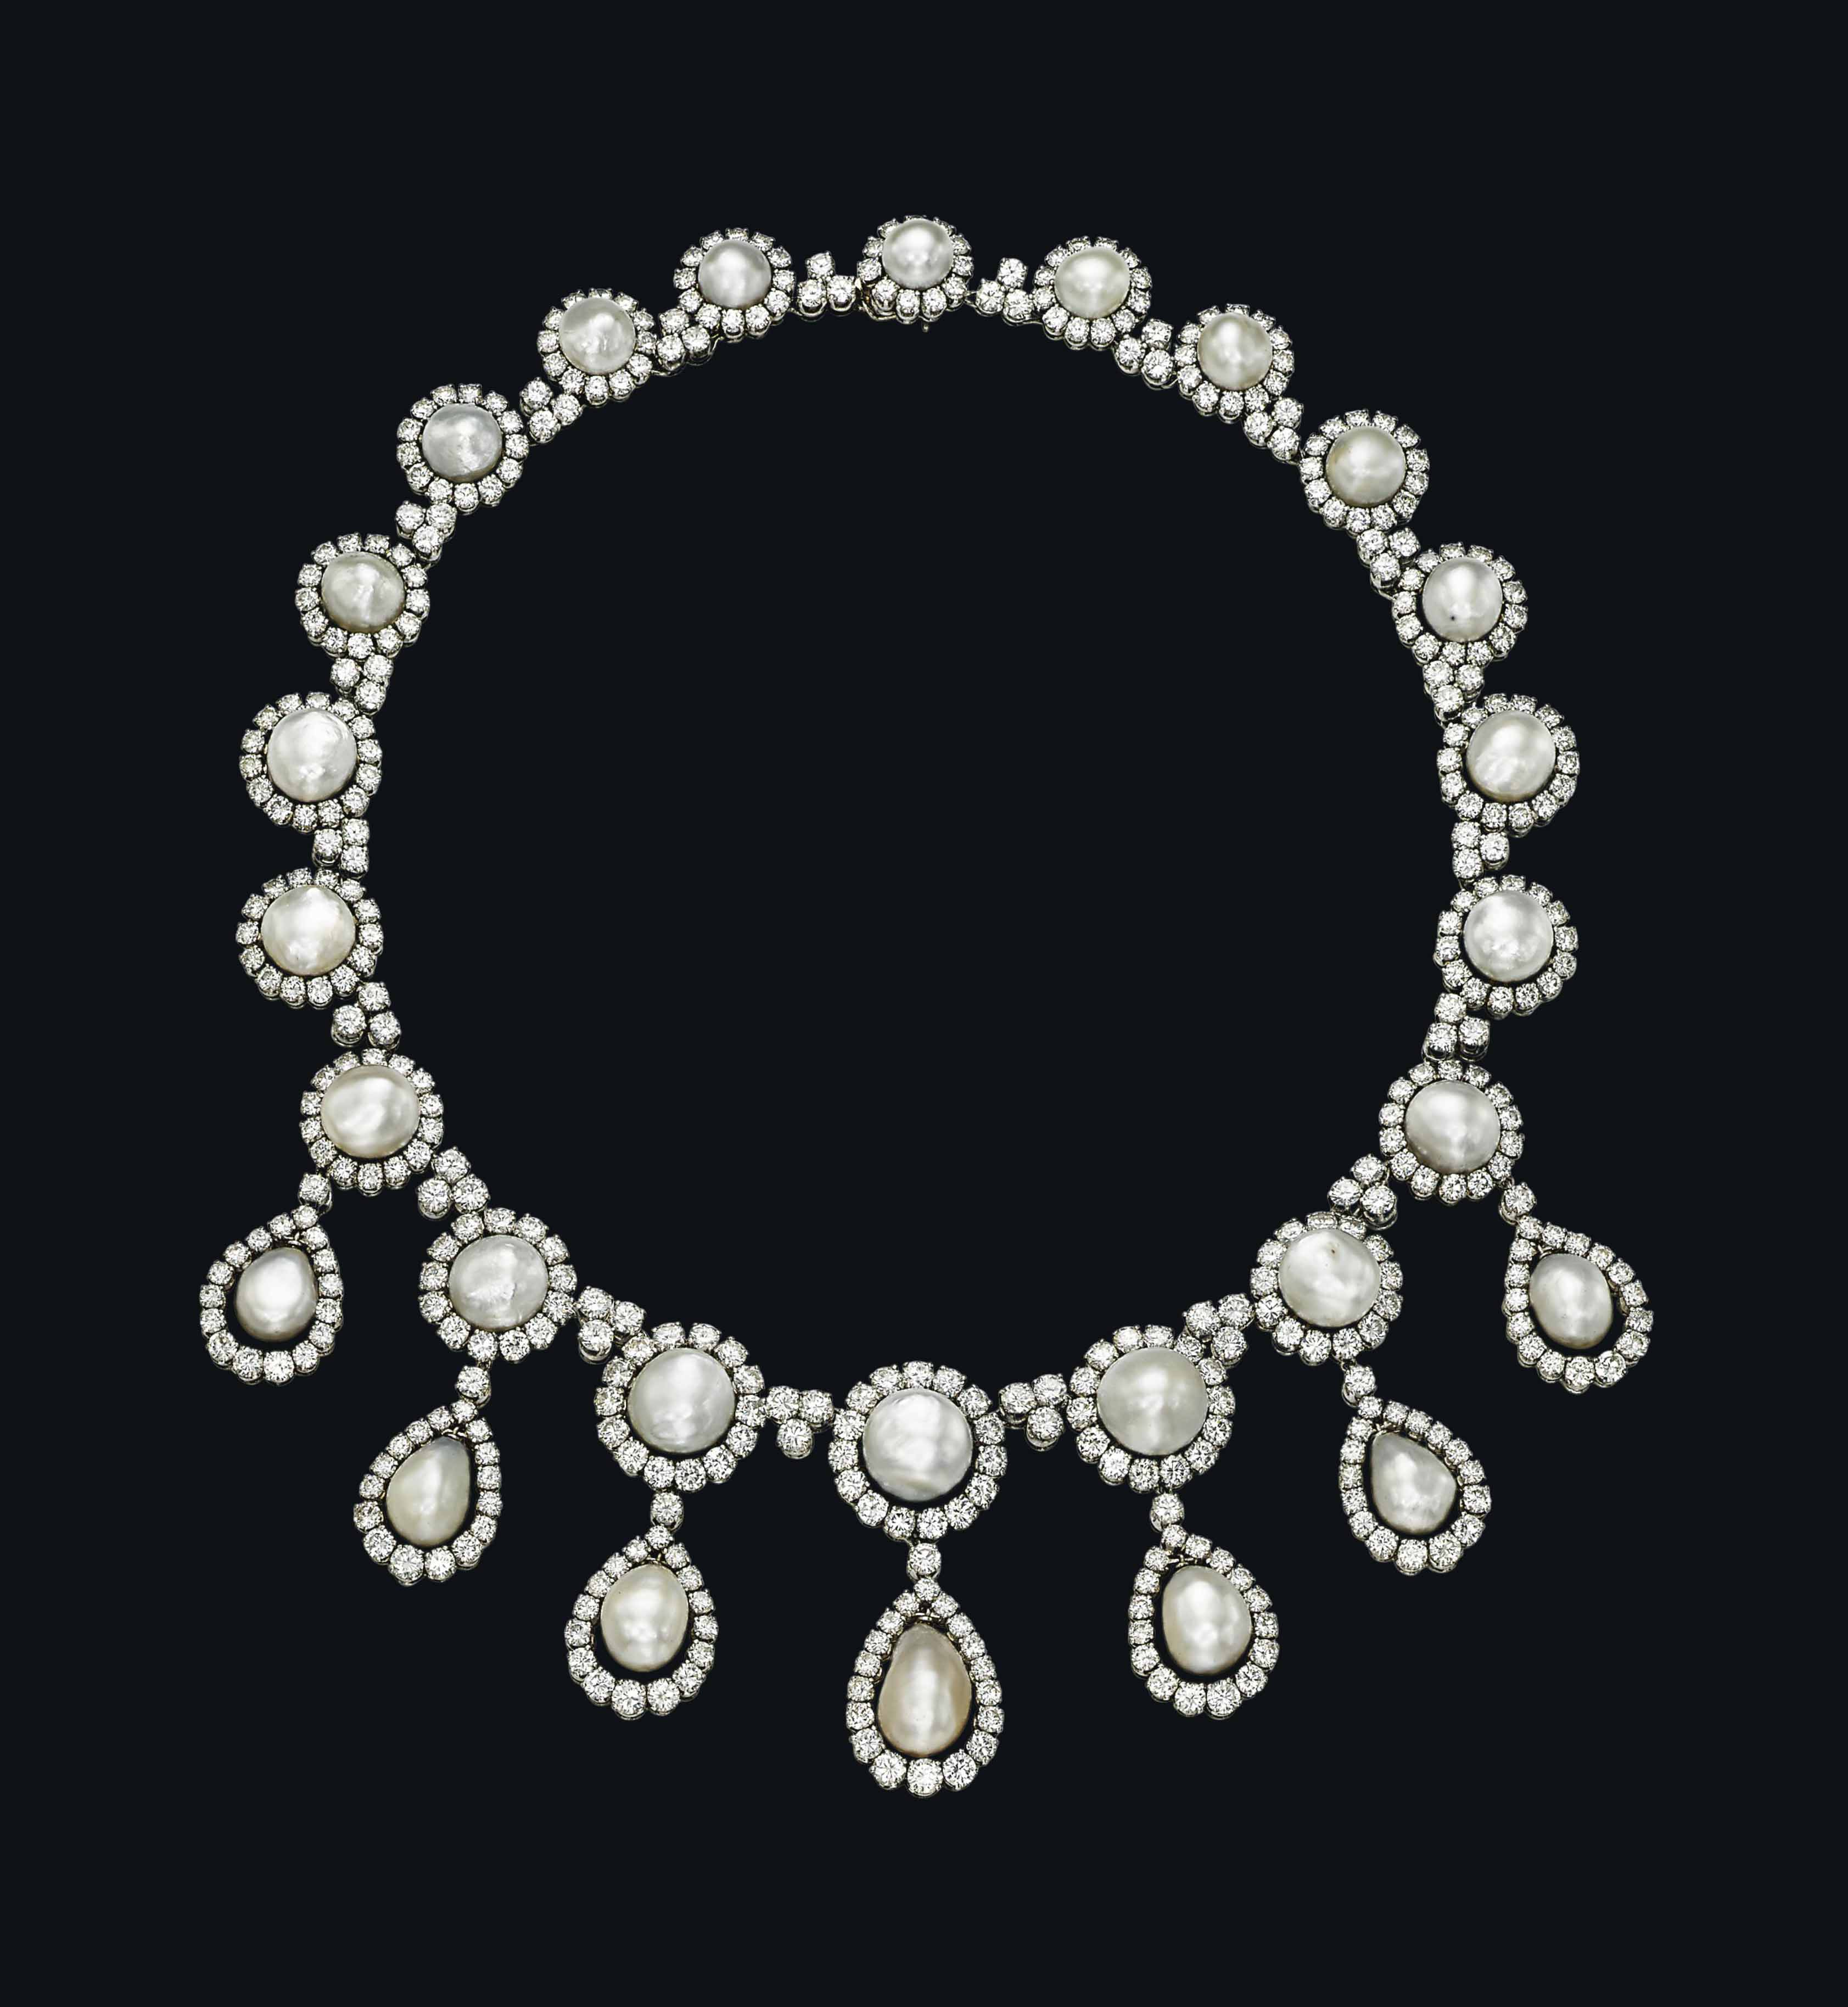 A NATURAL PEARL AND DIAMOND NECKLACE, BY CHANTECLER